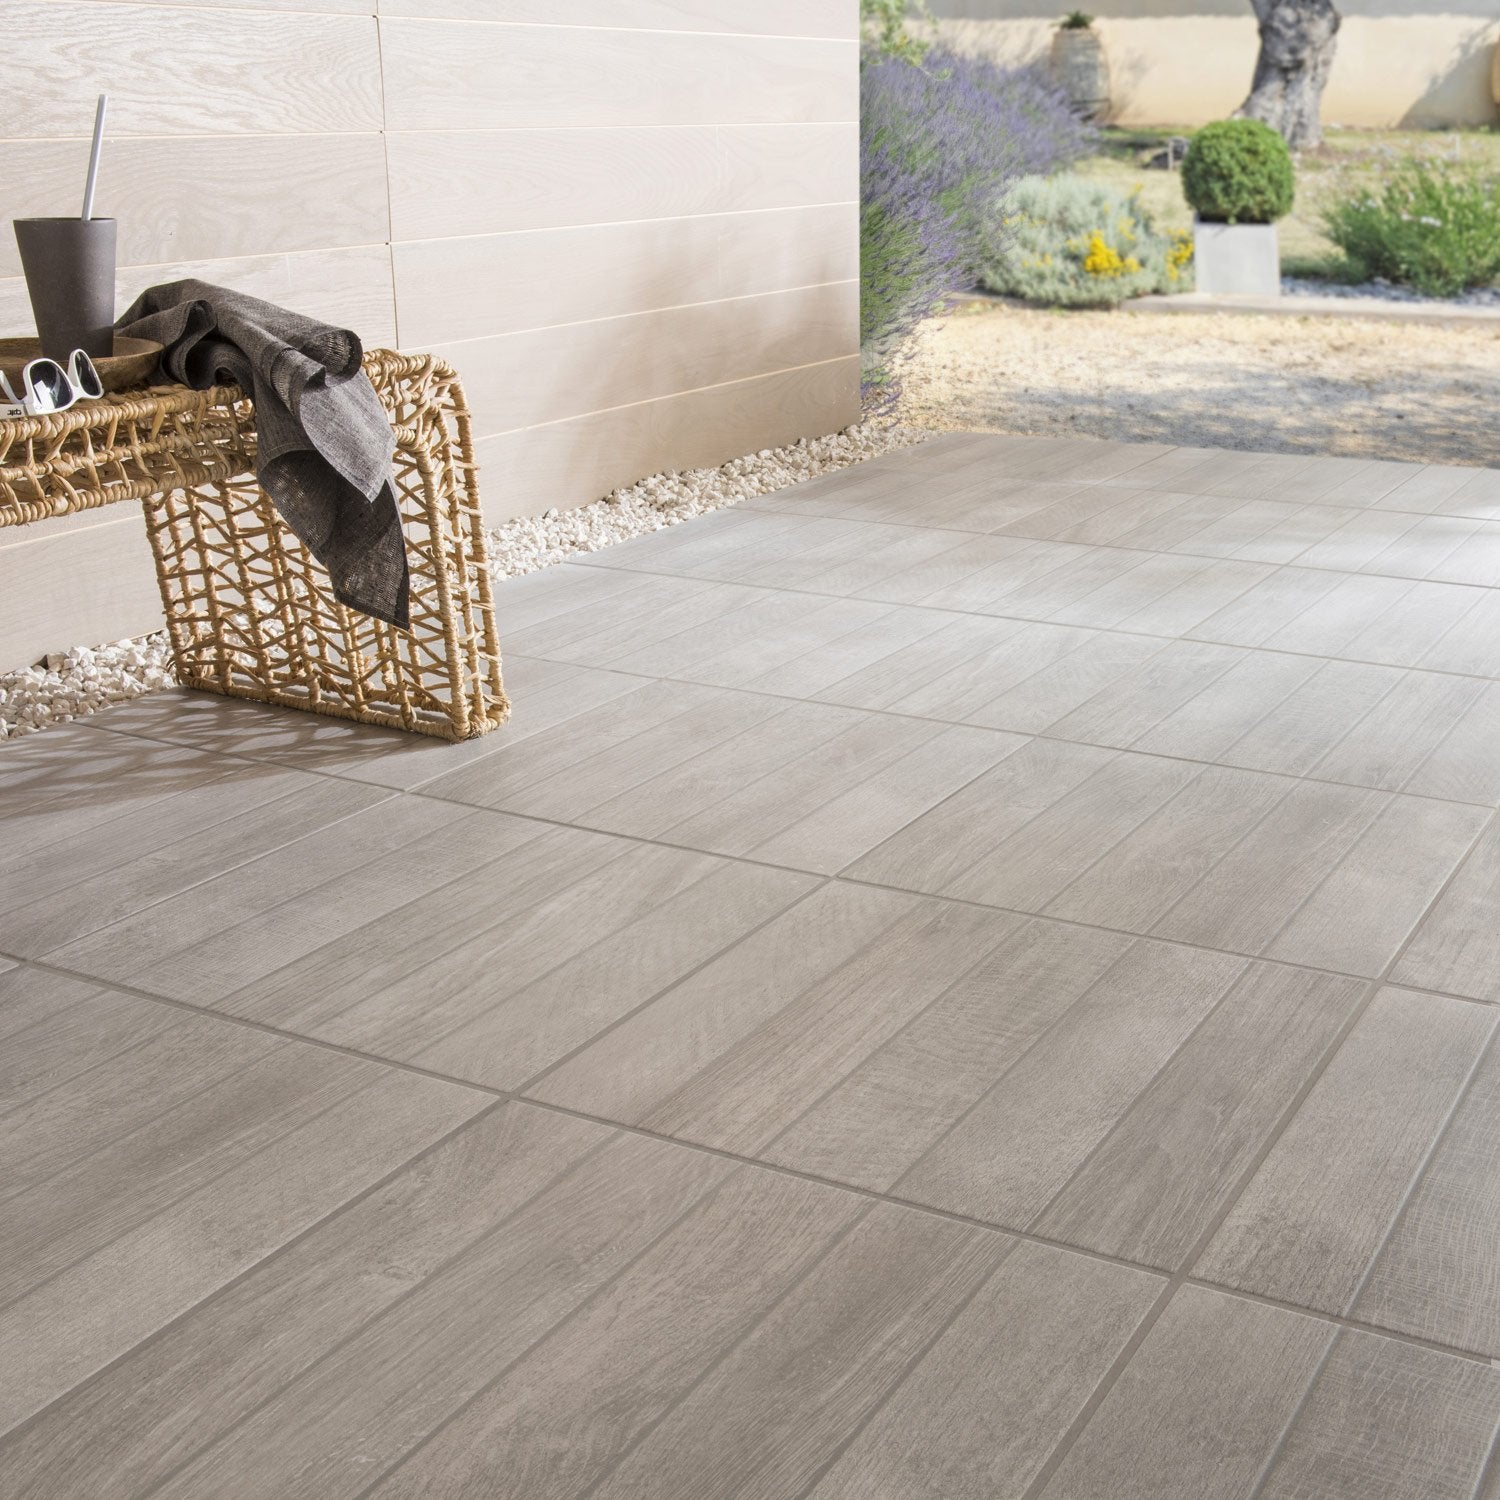 Carrelage sol gris effet bois jungle x cm for Joint carrelage exterieur